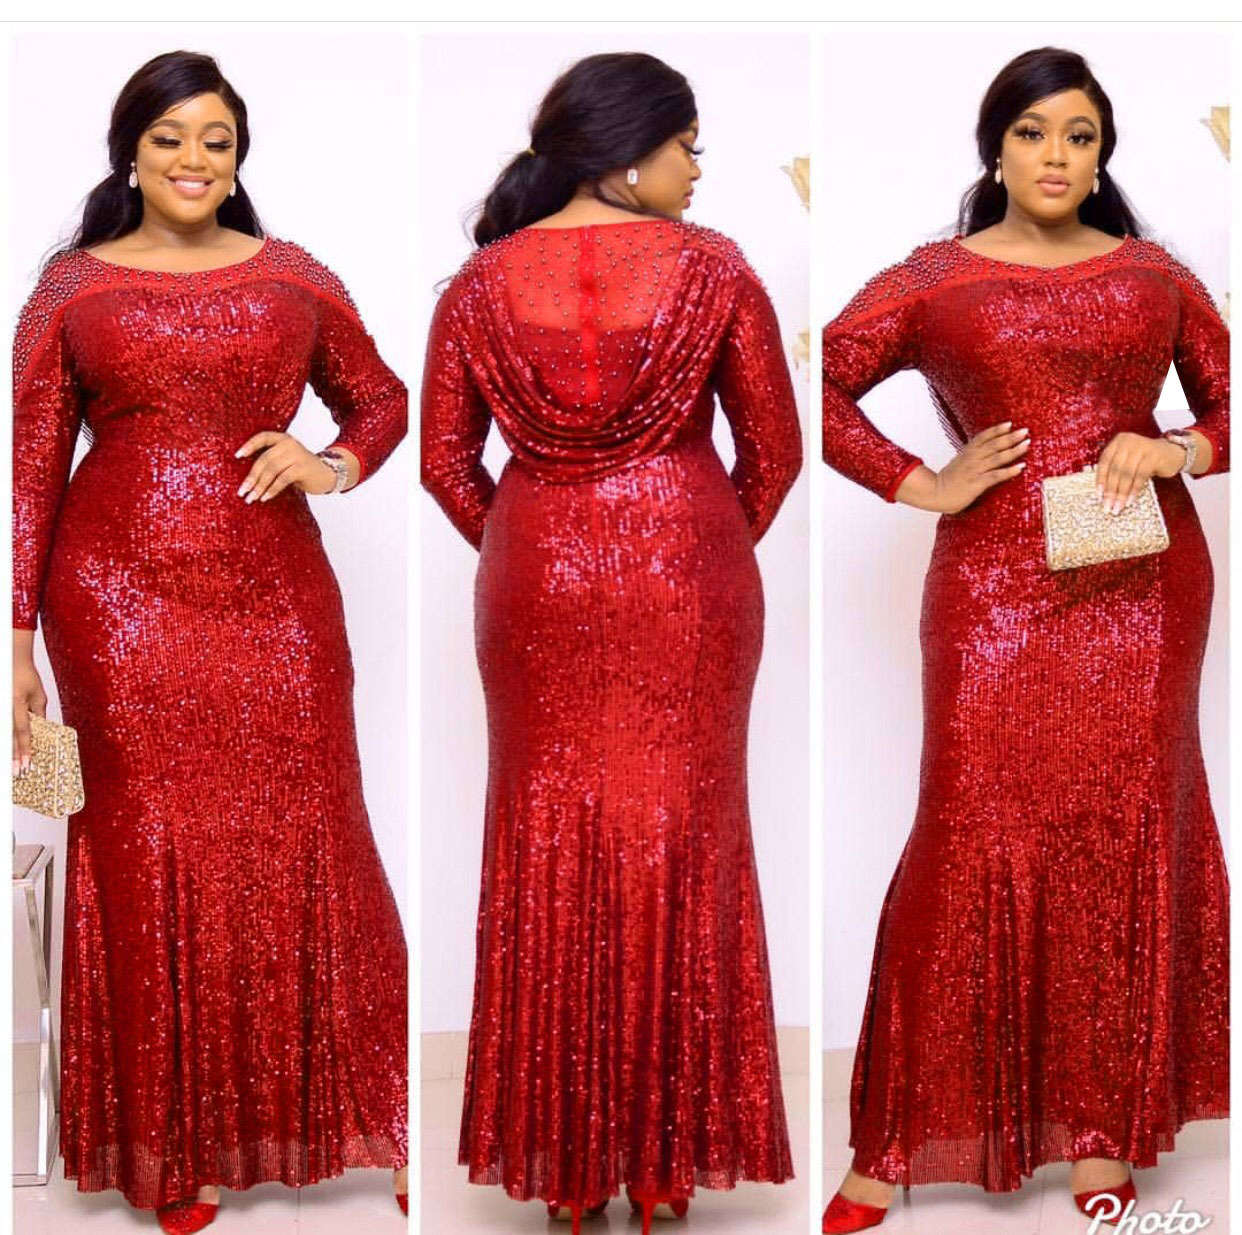 African Dresses For Women African Dress Women's Lace Sequins Round Neck Sleeves Daily Dress Evening Dress Party Dress